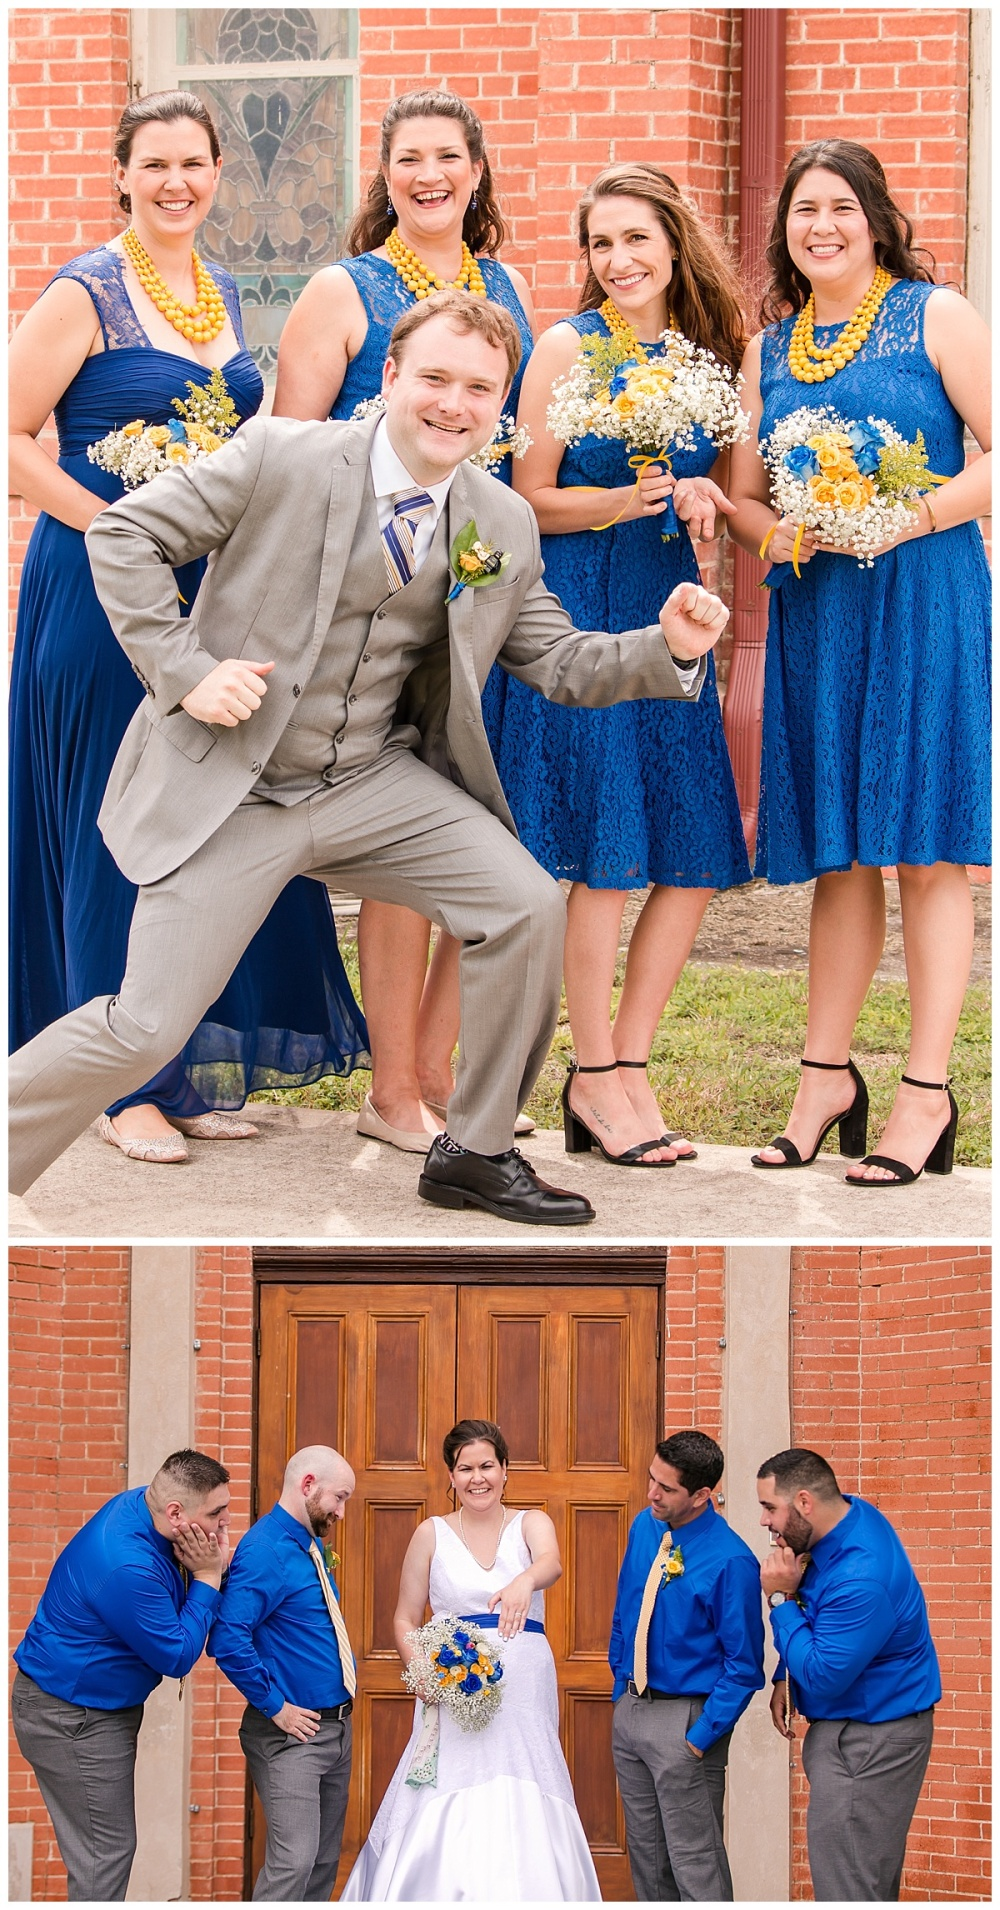 Texas-Wedding-Photographer-La-Coste-Our-Lady-Of-Grace-Church-Bride-Groom-Lego-Theme-Carly-Barton-Photography_0032.jpg